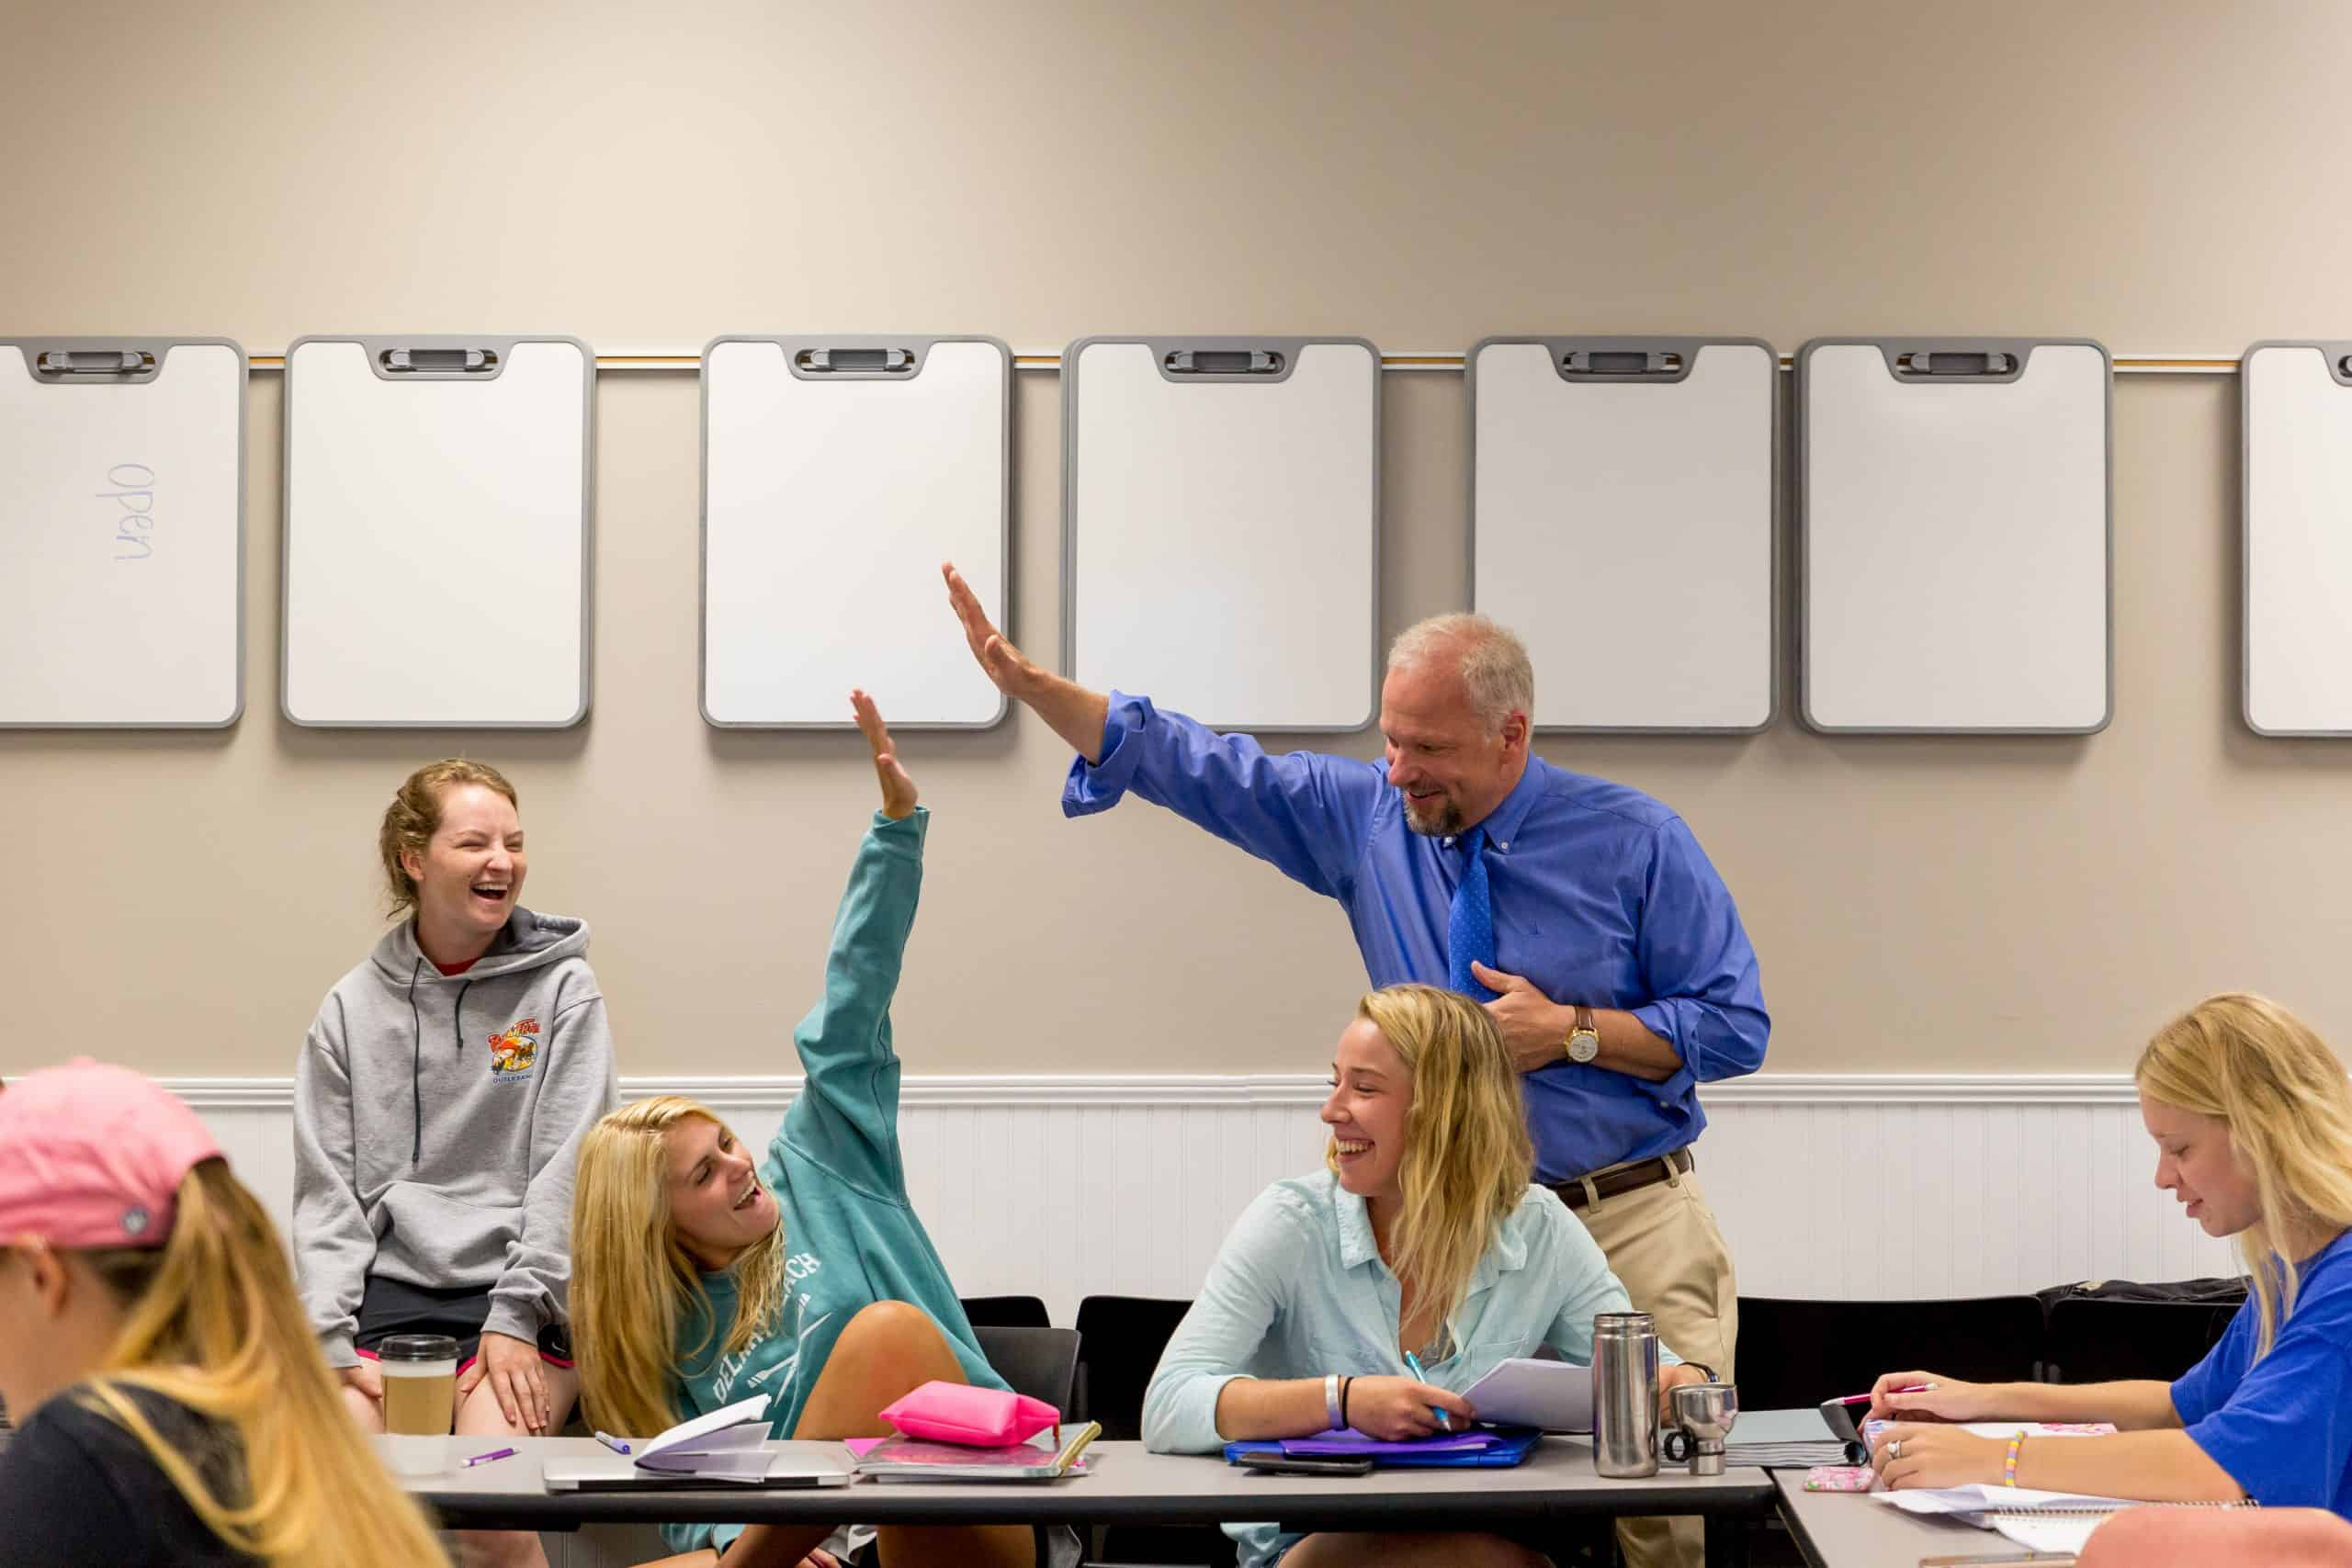 Professor high-fiving a student